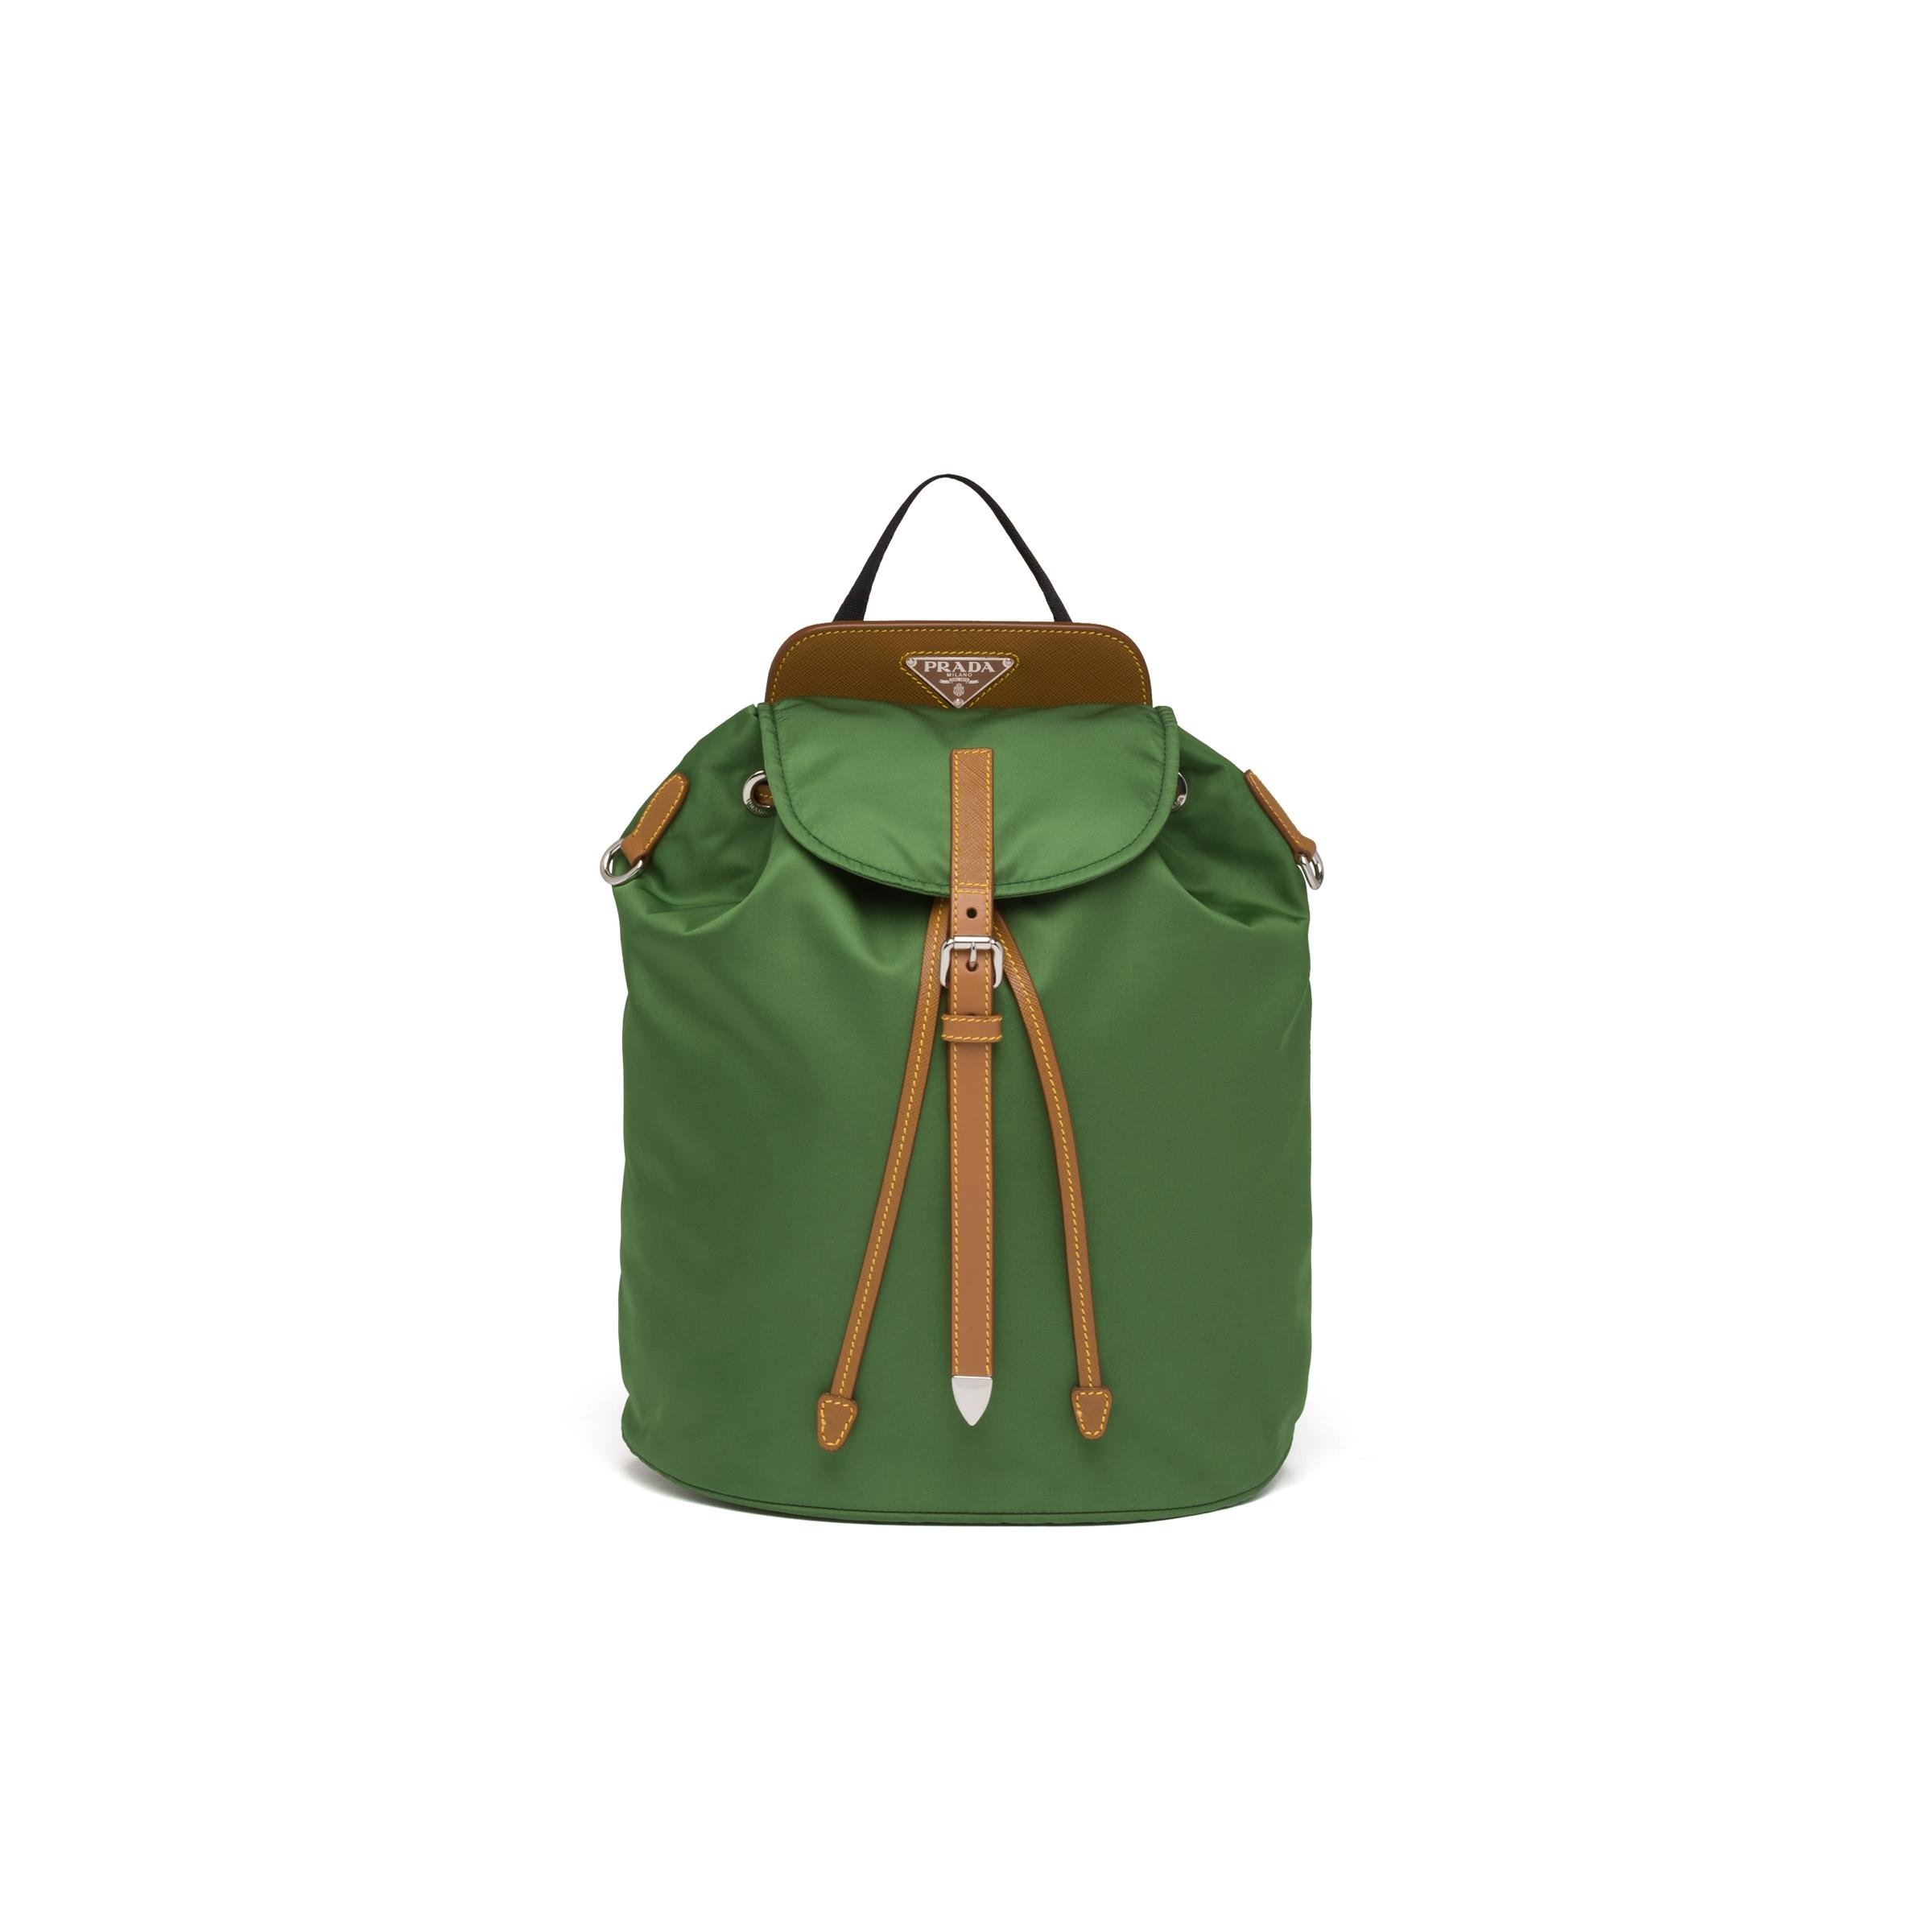 Nylon And Saffiano Leather Backpack Women Larch Green/caramel